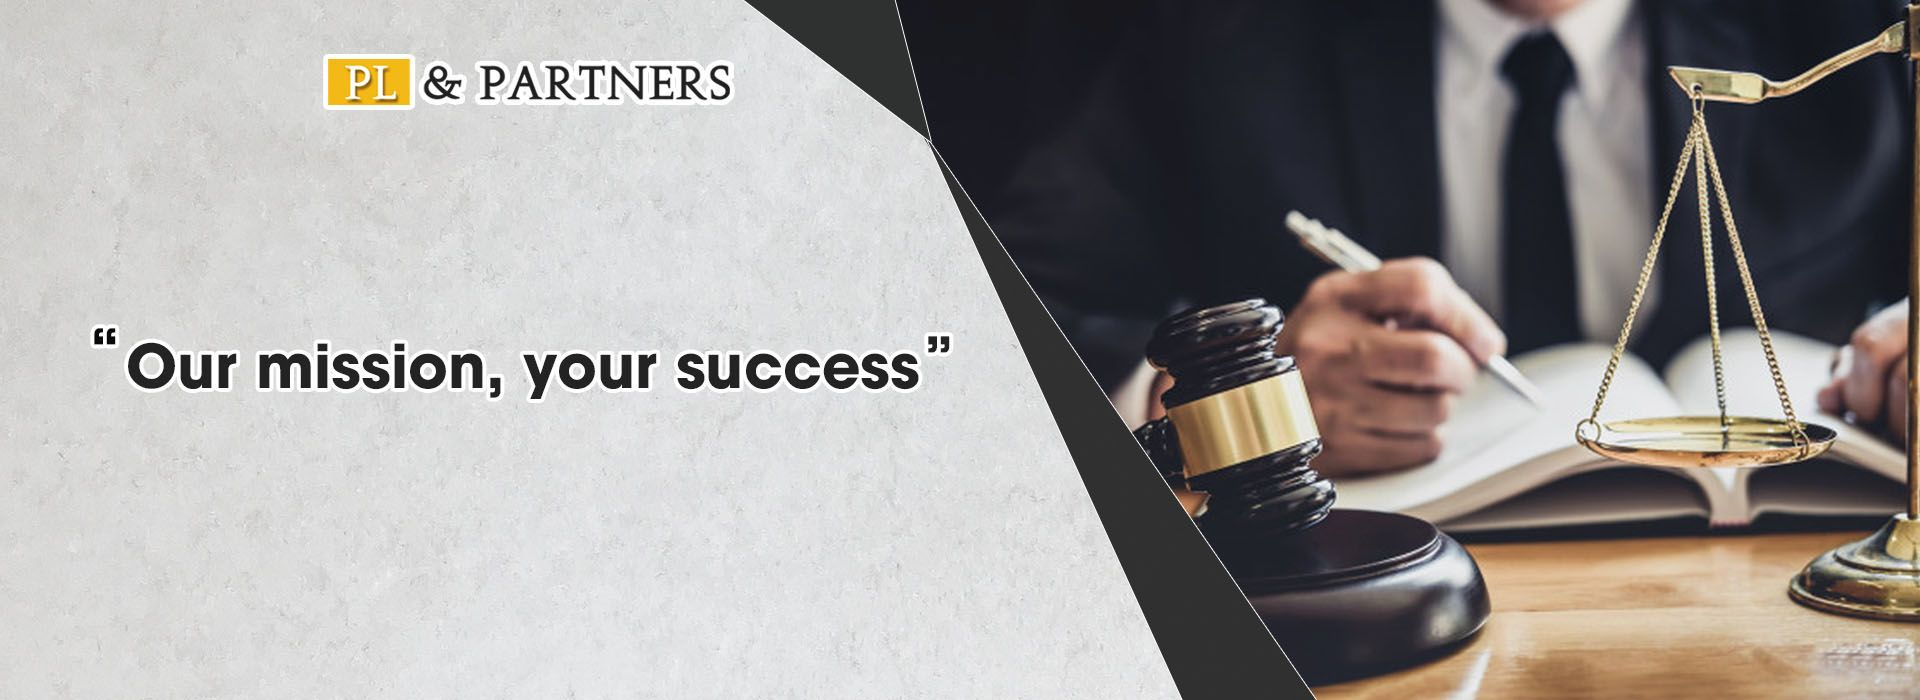 Strengths of PL&Partners law firm